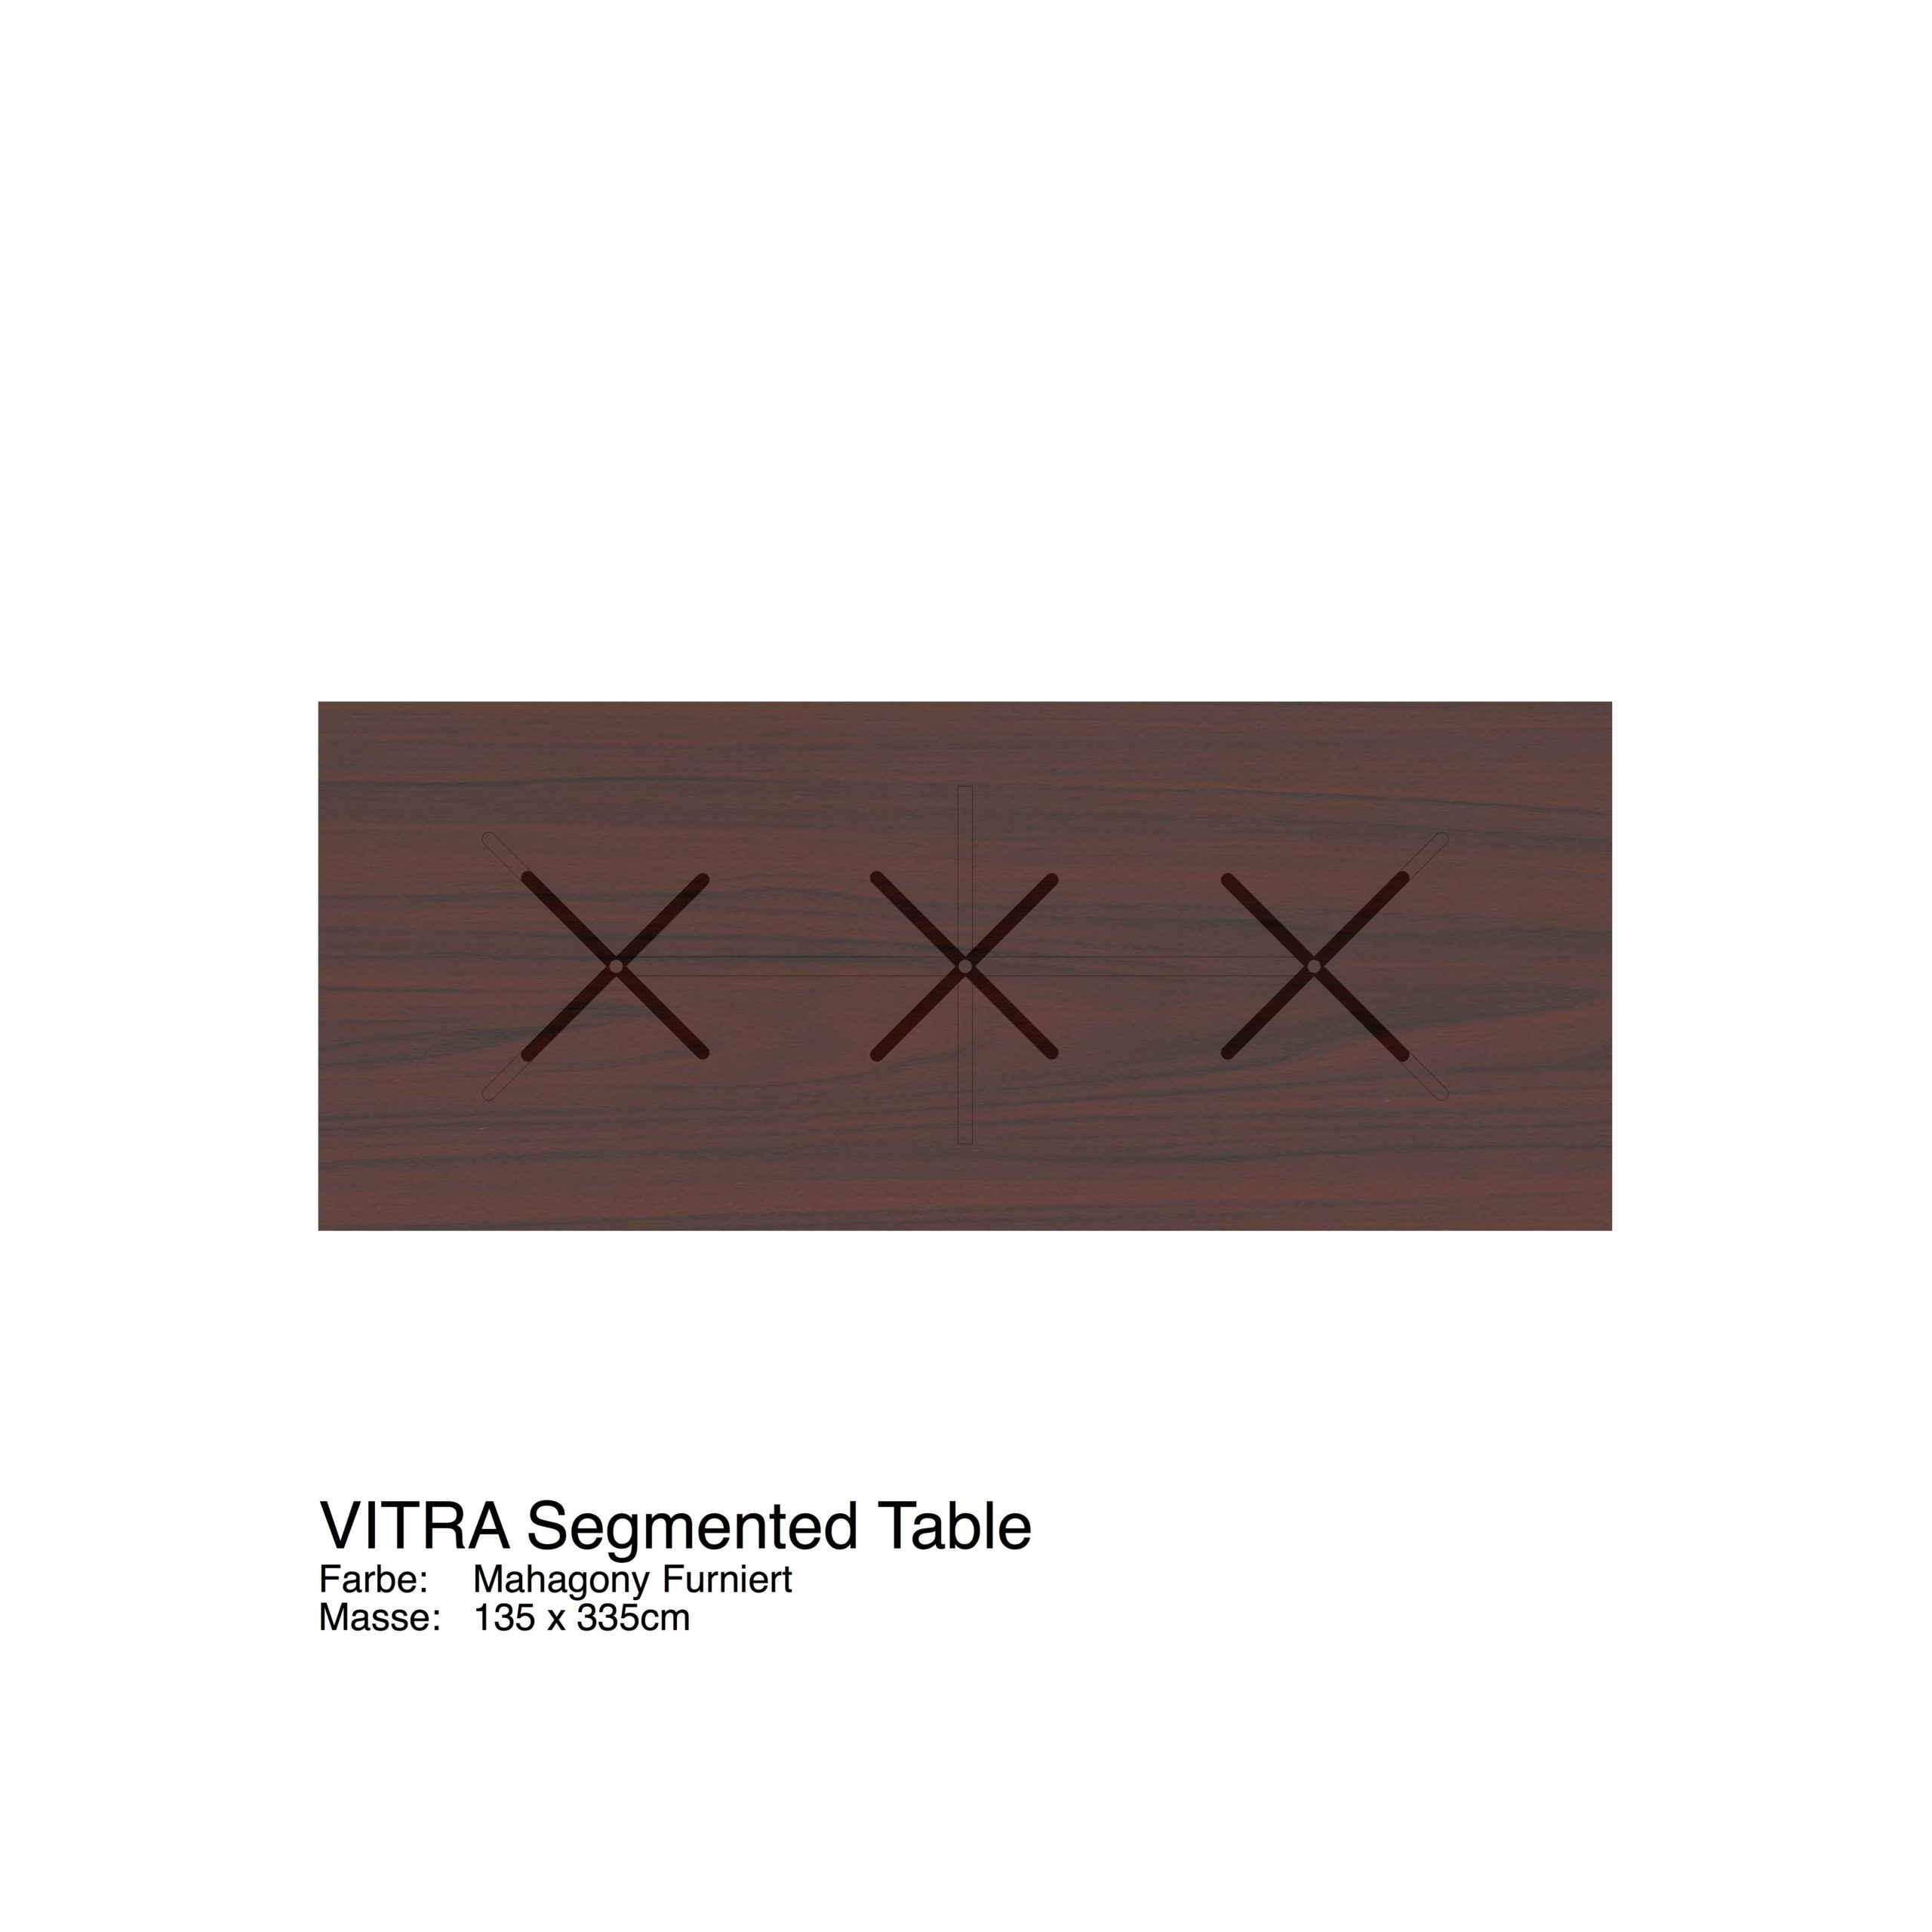 VITRA Segmented Table 135 x 335cm